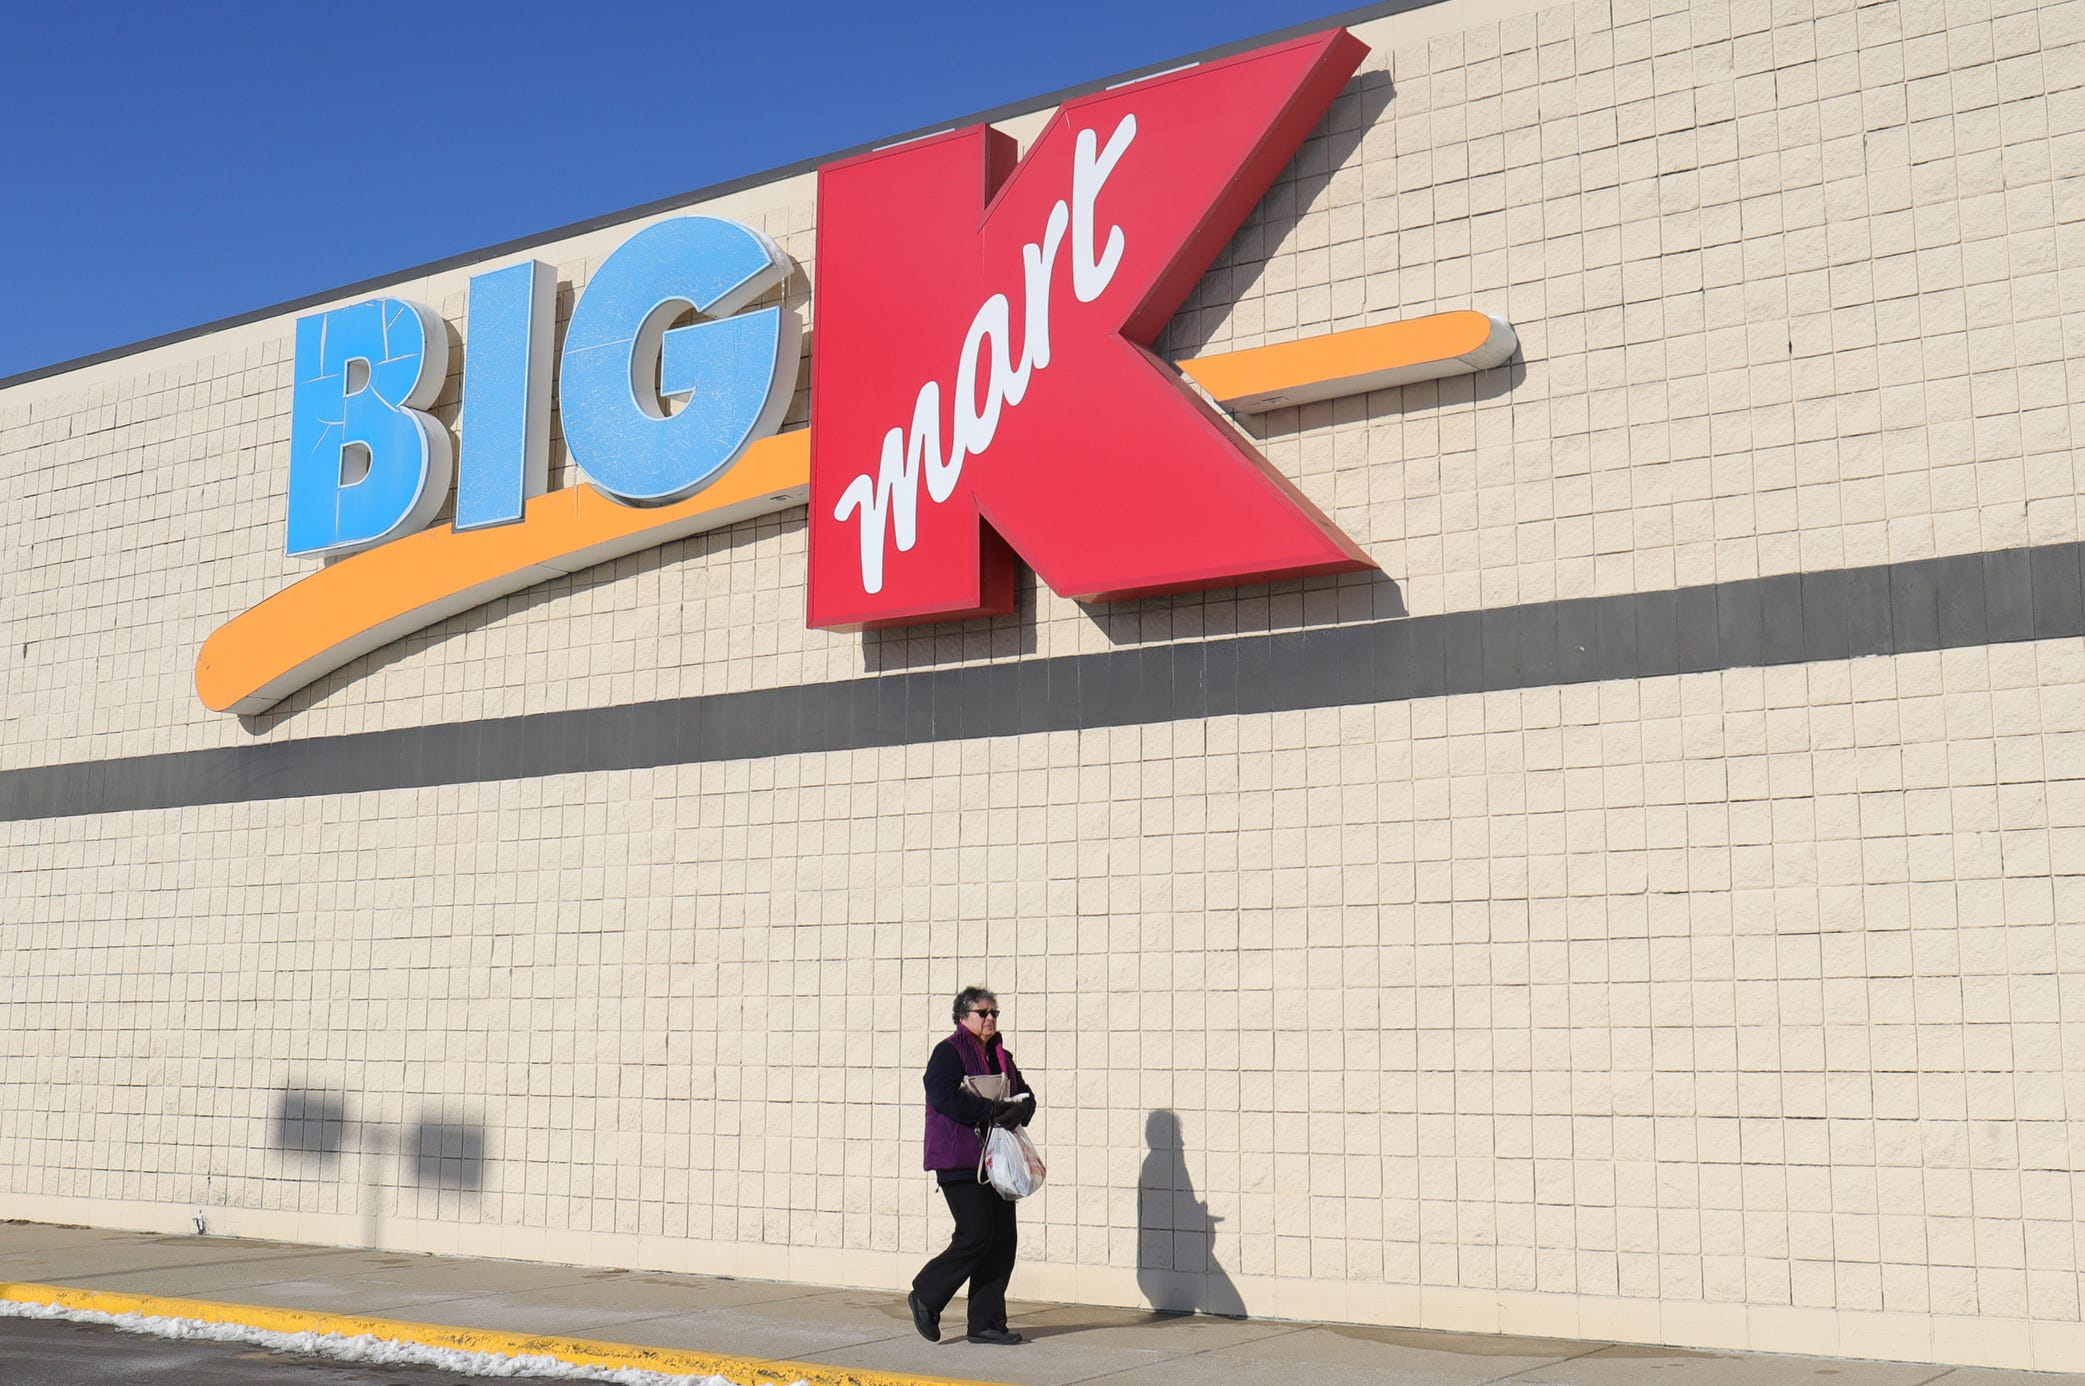 Last Kmart store in Michigan, the chain's home state, prepares to close doors in November